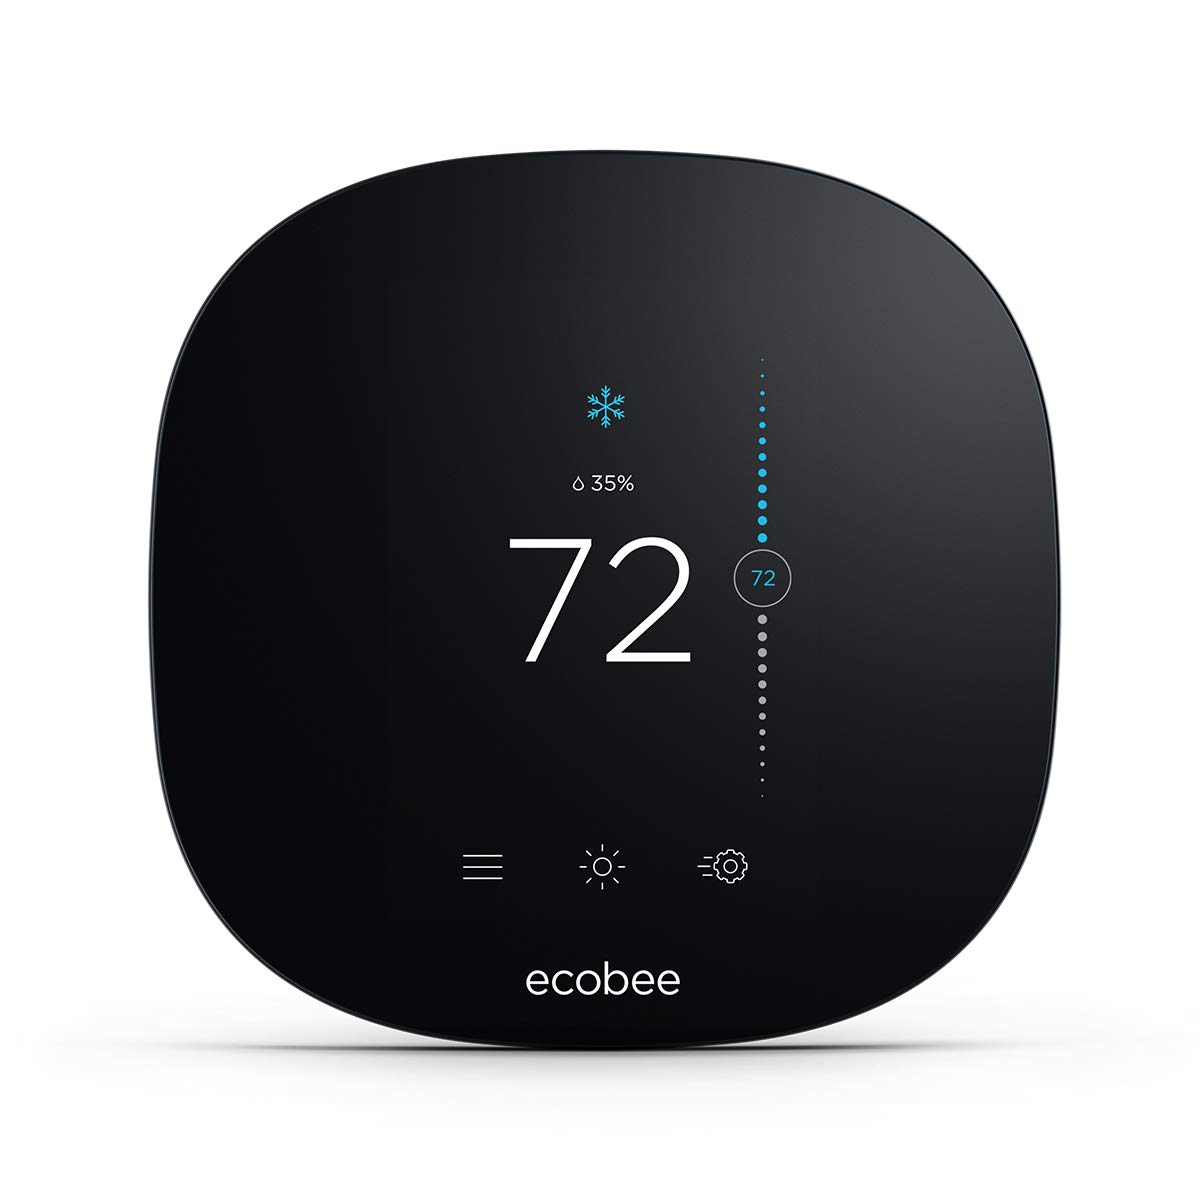 ecobee EB-STATE3LT-02 3 Lite Smart Thermostat Black